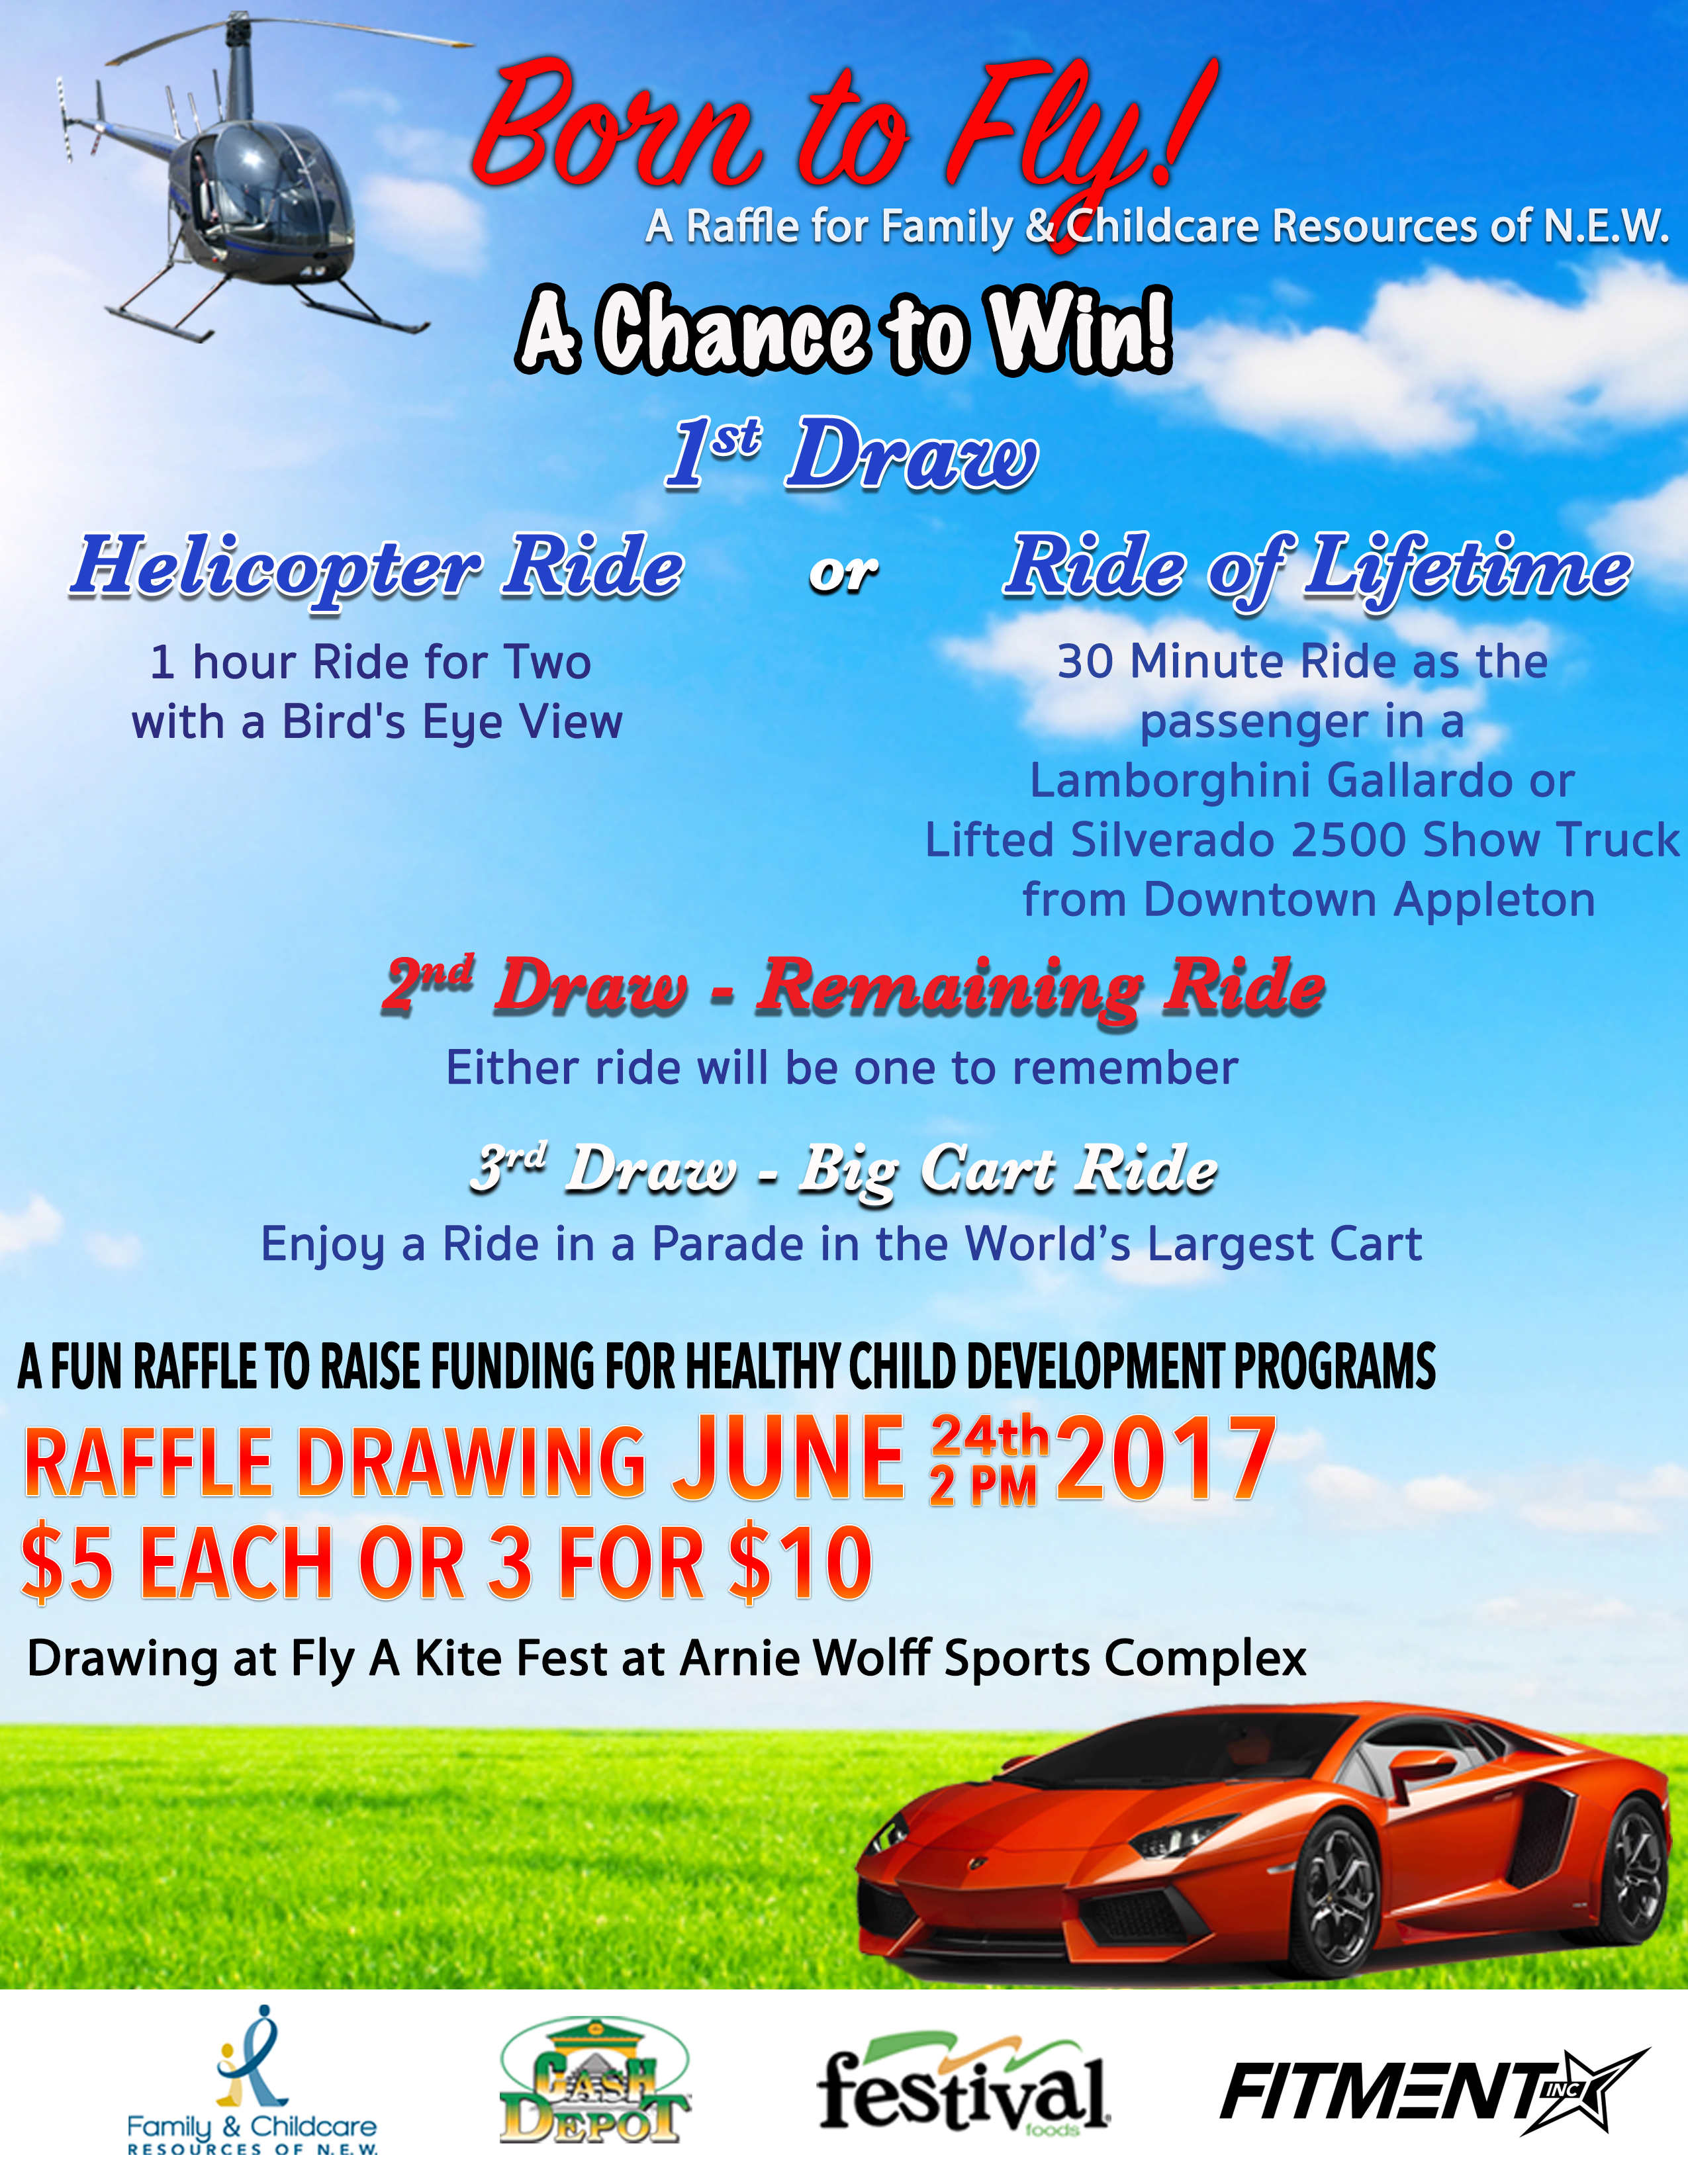 Born to Fly Raffle | Family & Childcare Resources of Northeast Wisconsin